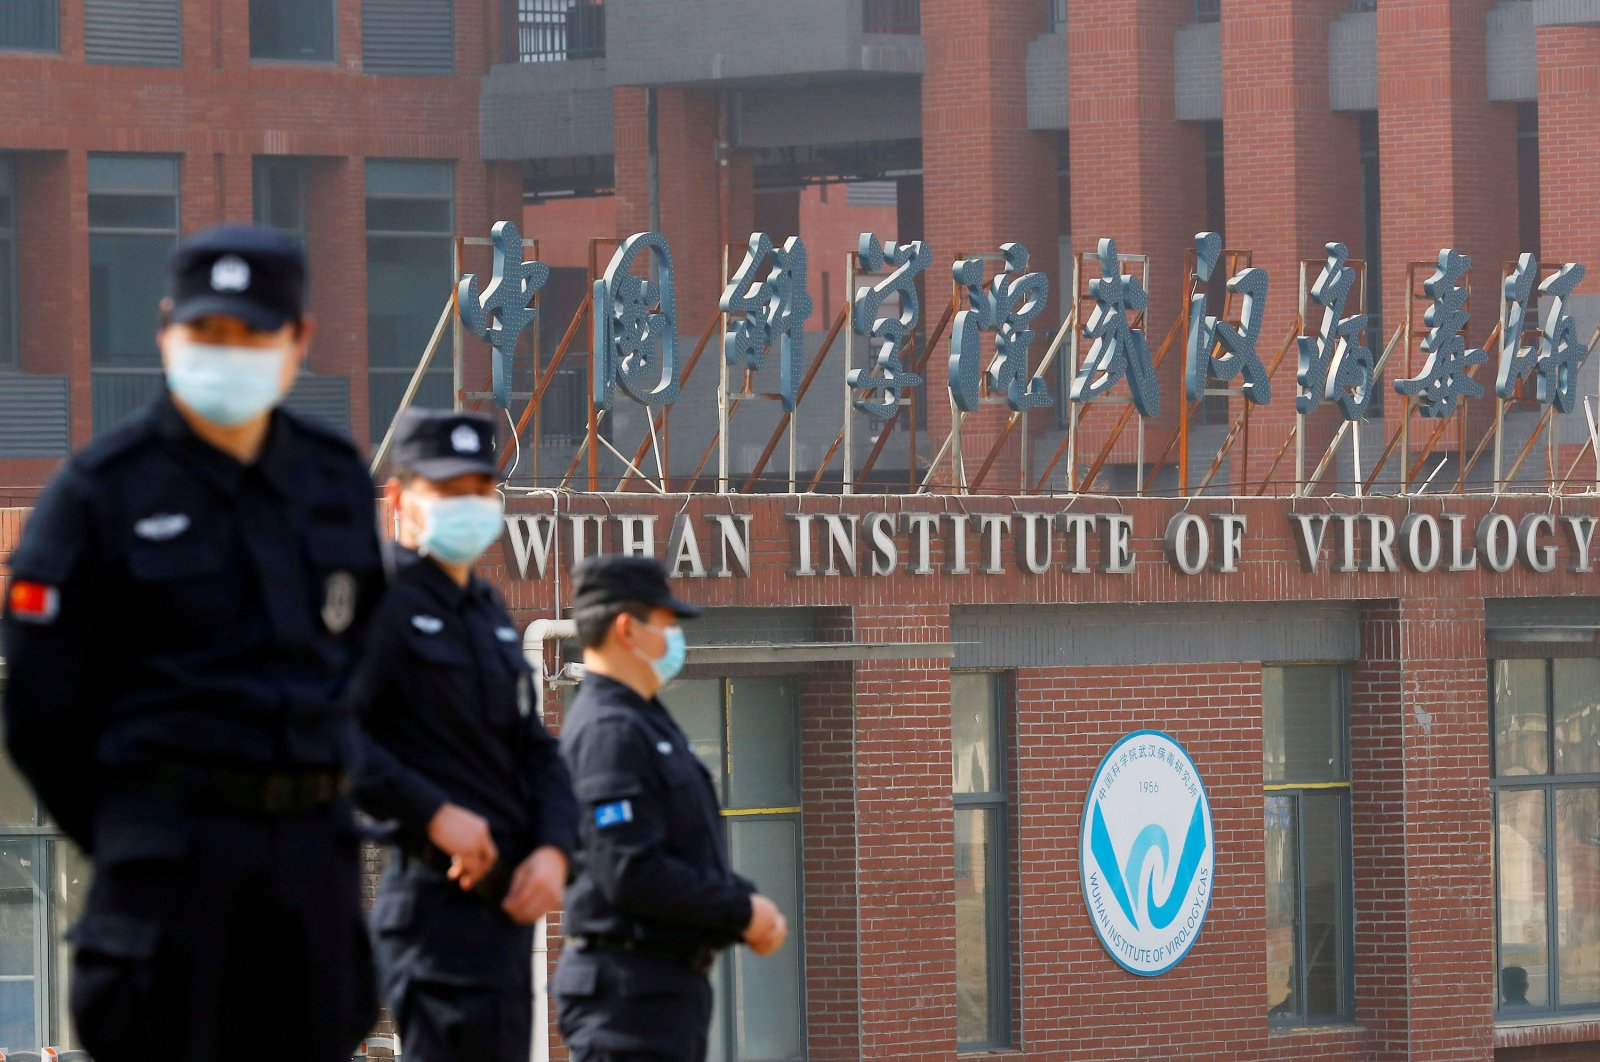 Security personnel keep watch outside the Wuhan Institute of Virology during the visit by the World Health Organization (WHO) team tasked with investigating the origins of COVID-19, in Wuhan, Hubei province, China Feb. 3, 2021. (Reuters Photo)